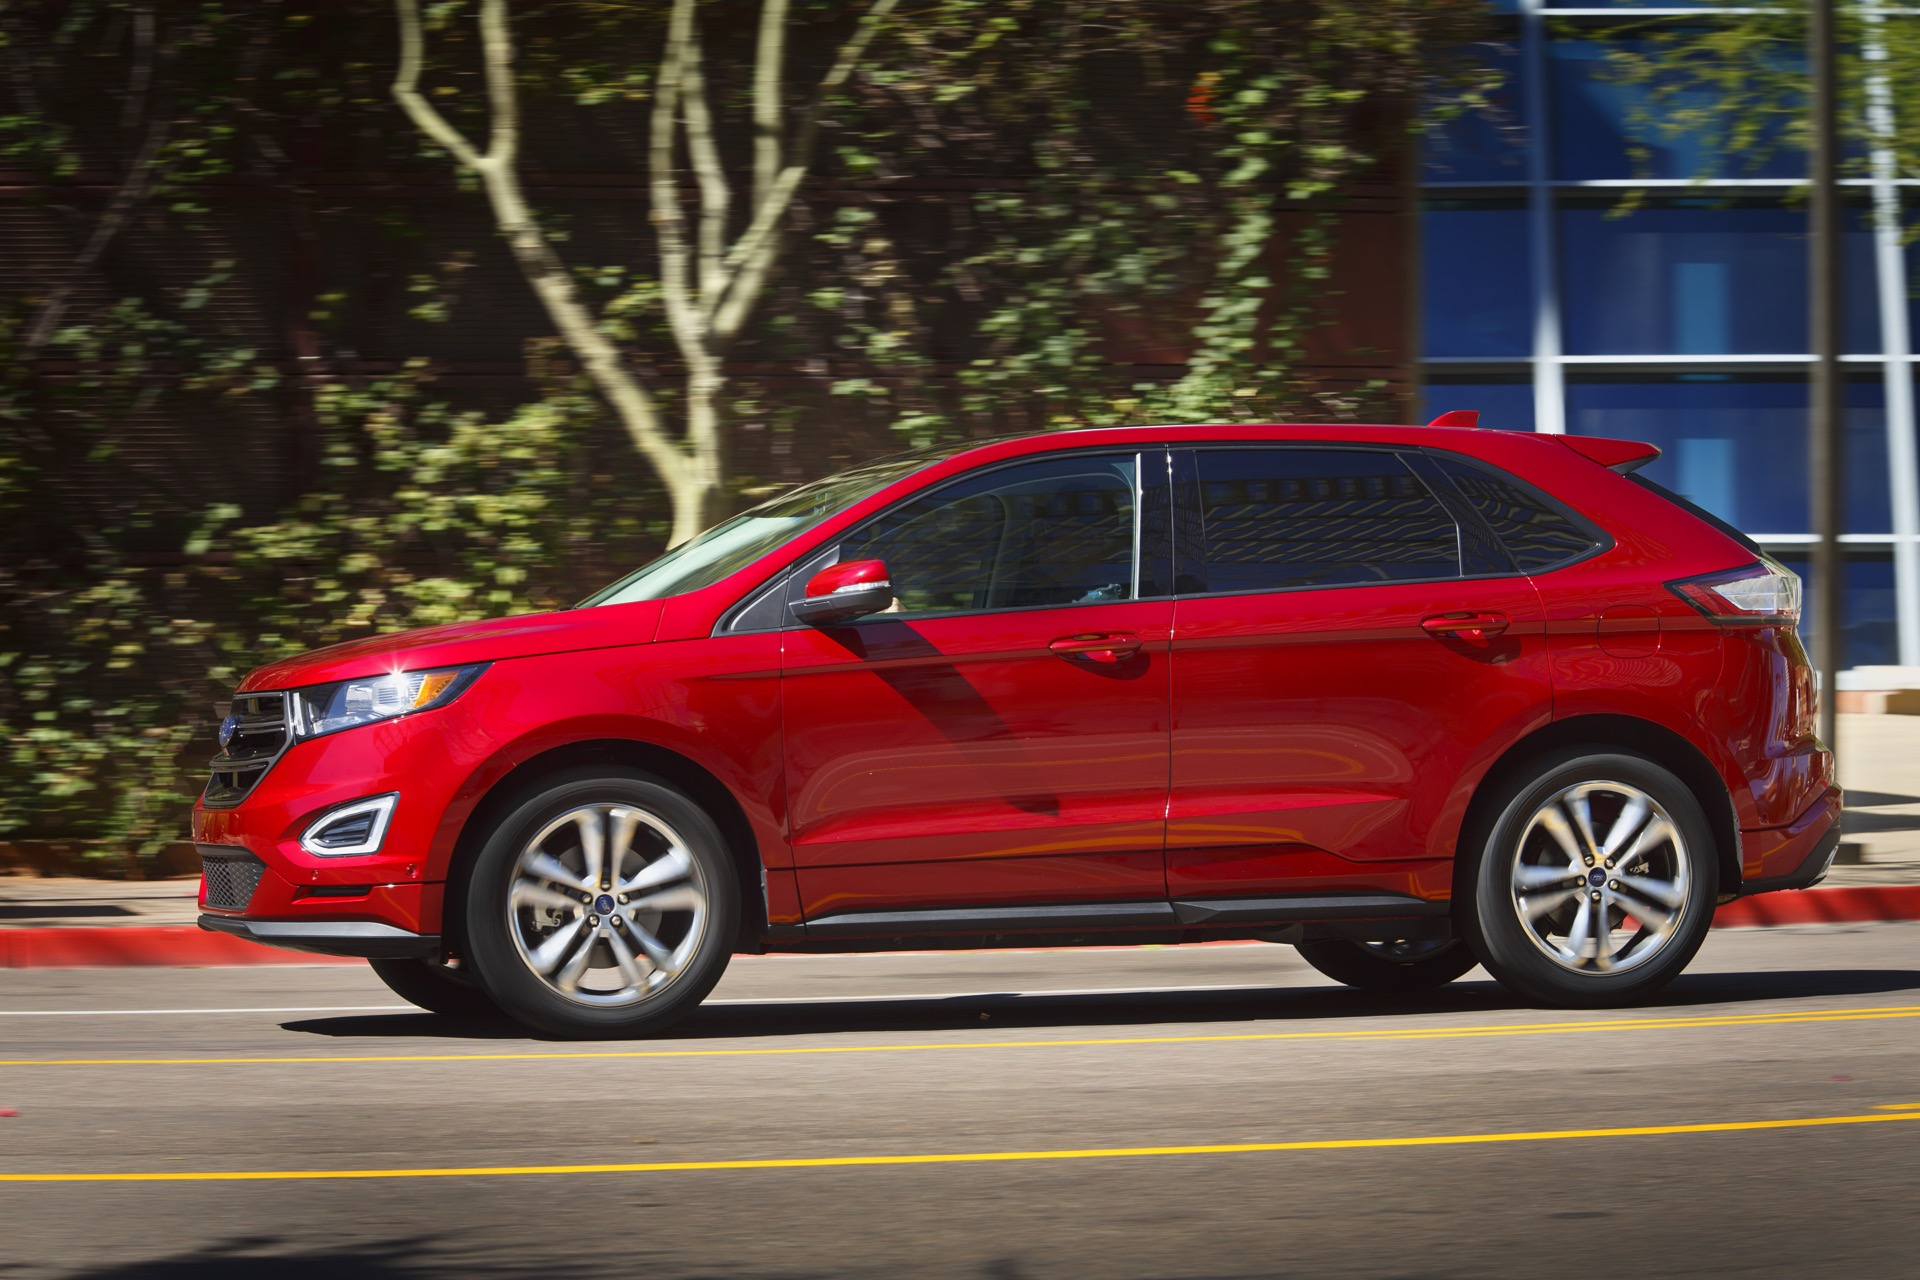 2016 ford edge safety review and crash test ratings the. Black Bedroom Furniture Sets. Home Design Ideas